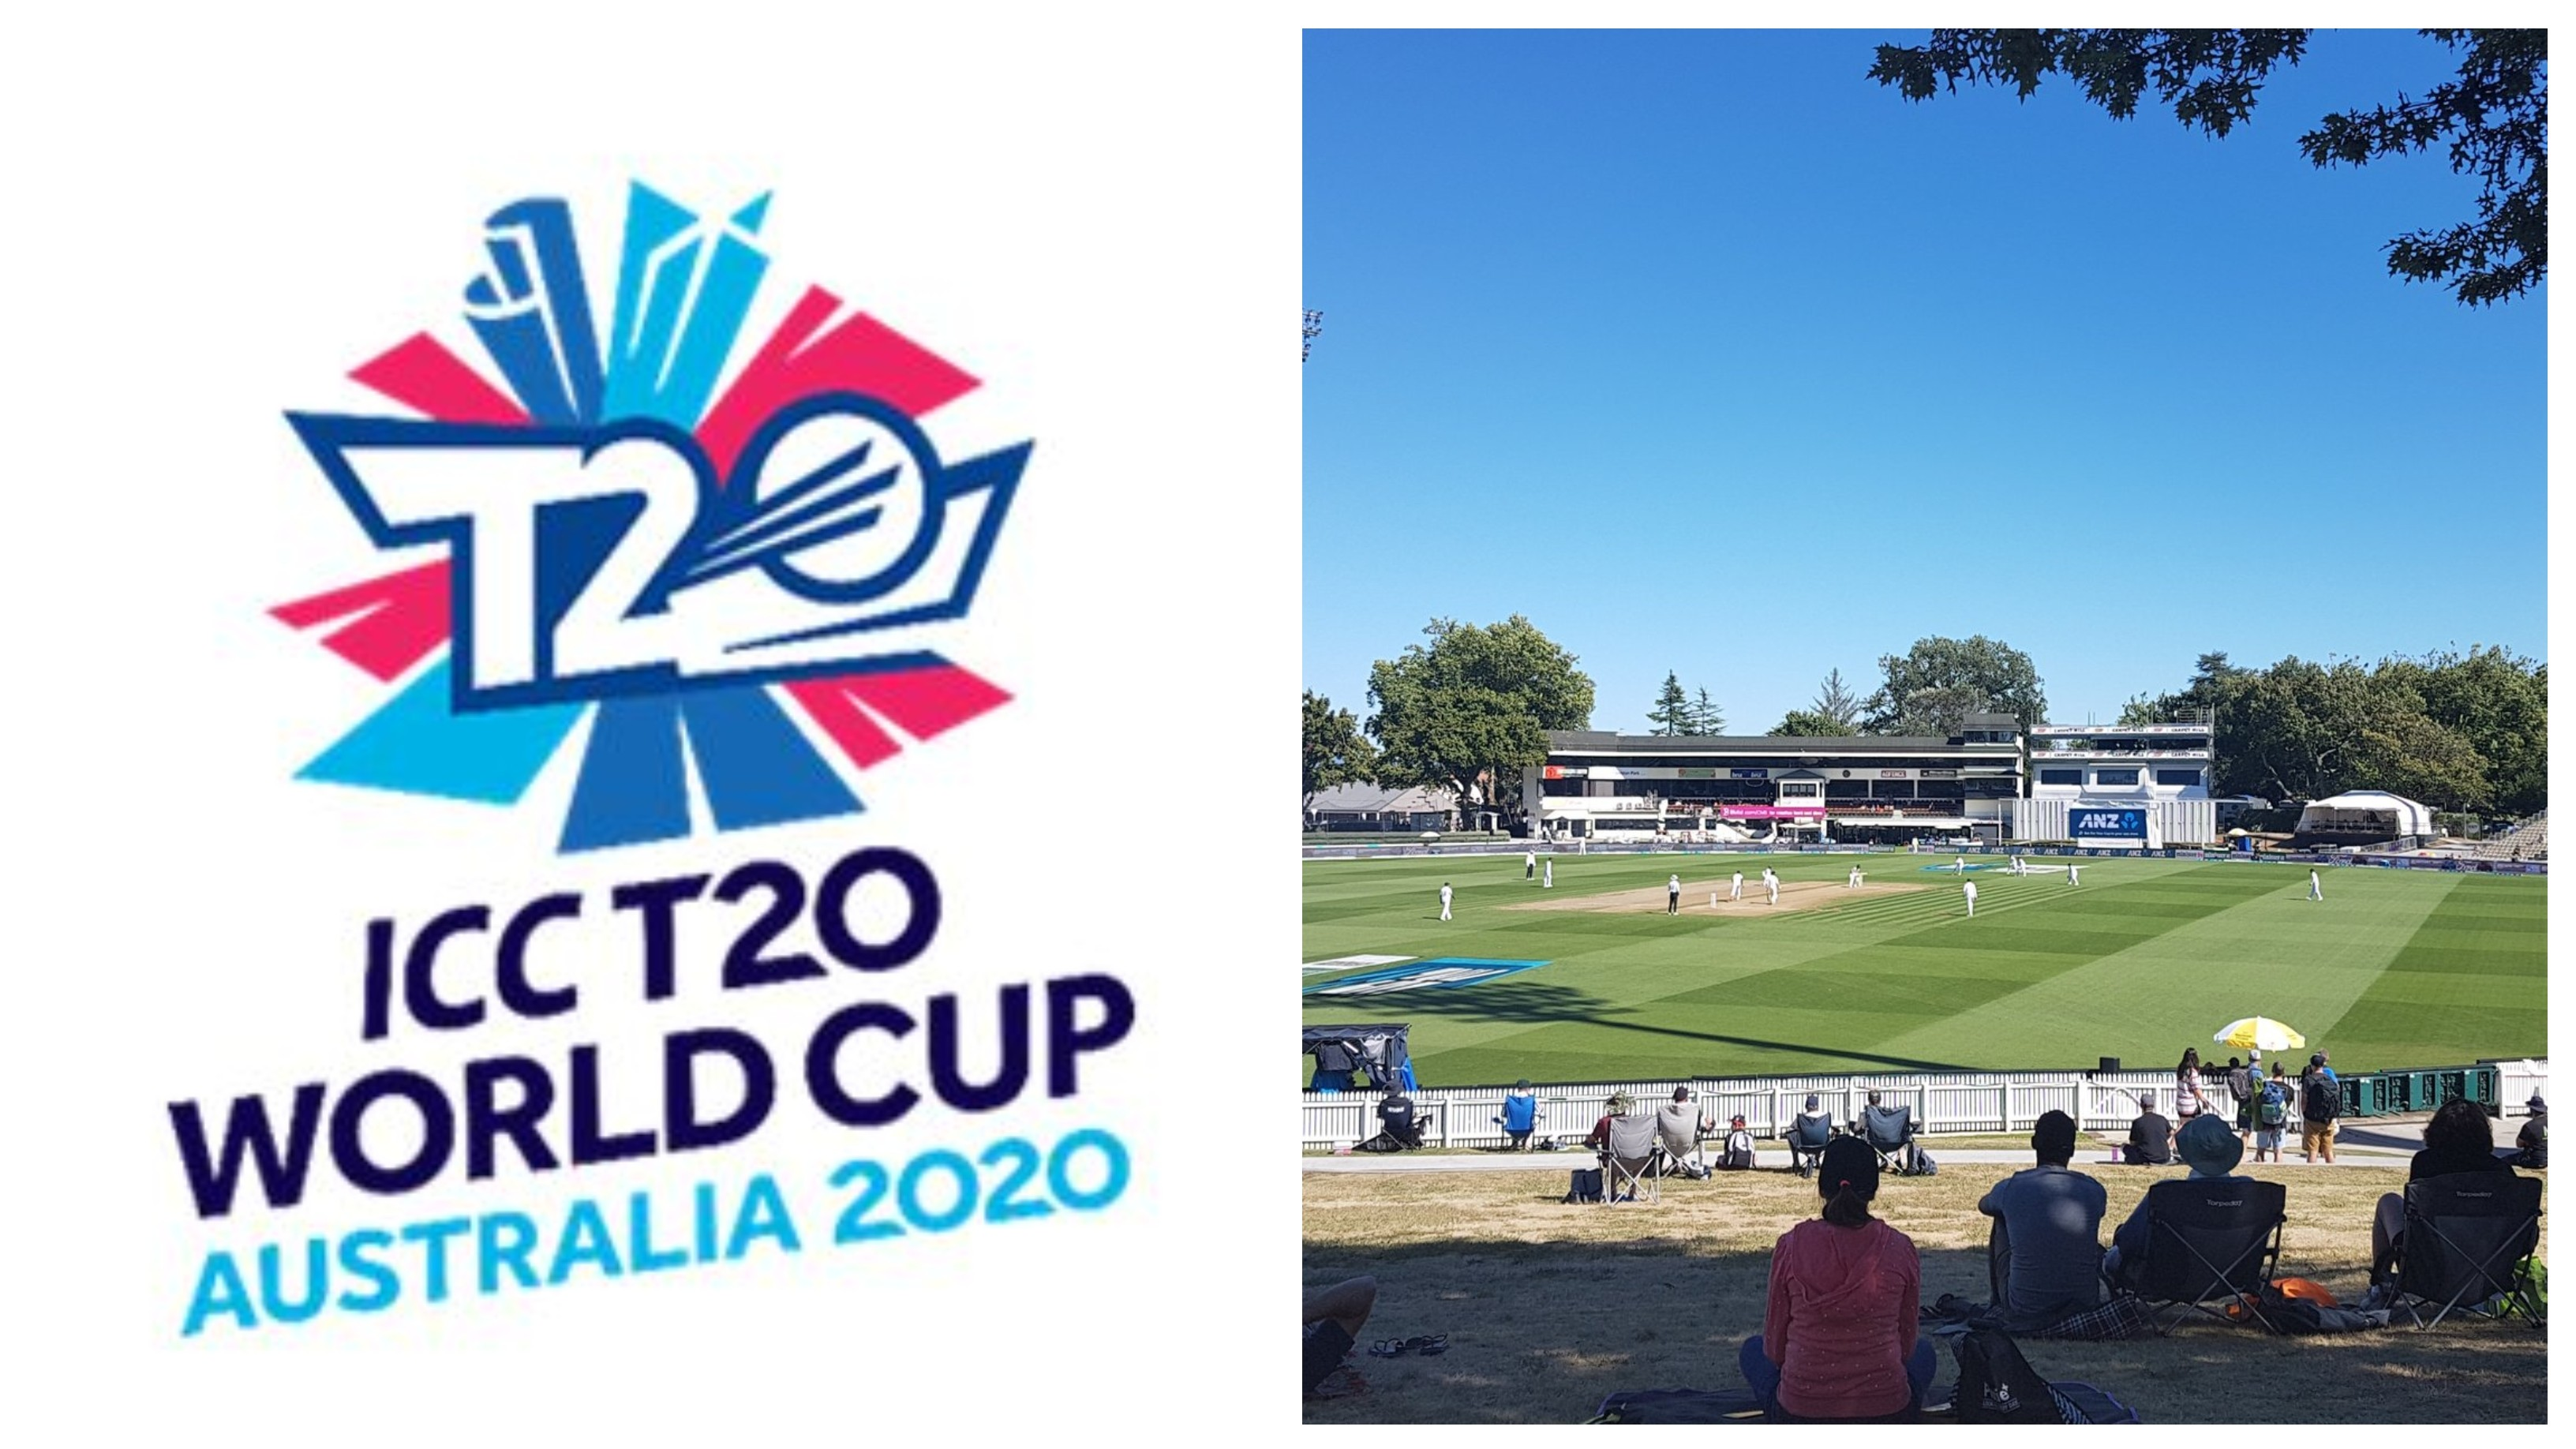 New Zealand Sports Minister speaks on replacing Australia as T20 World Cup host